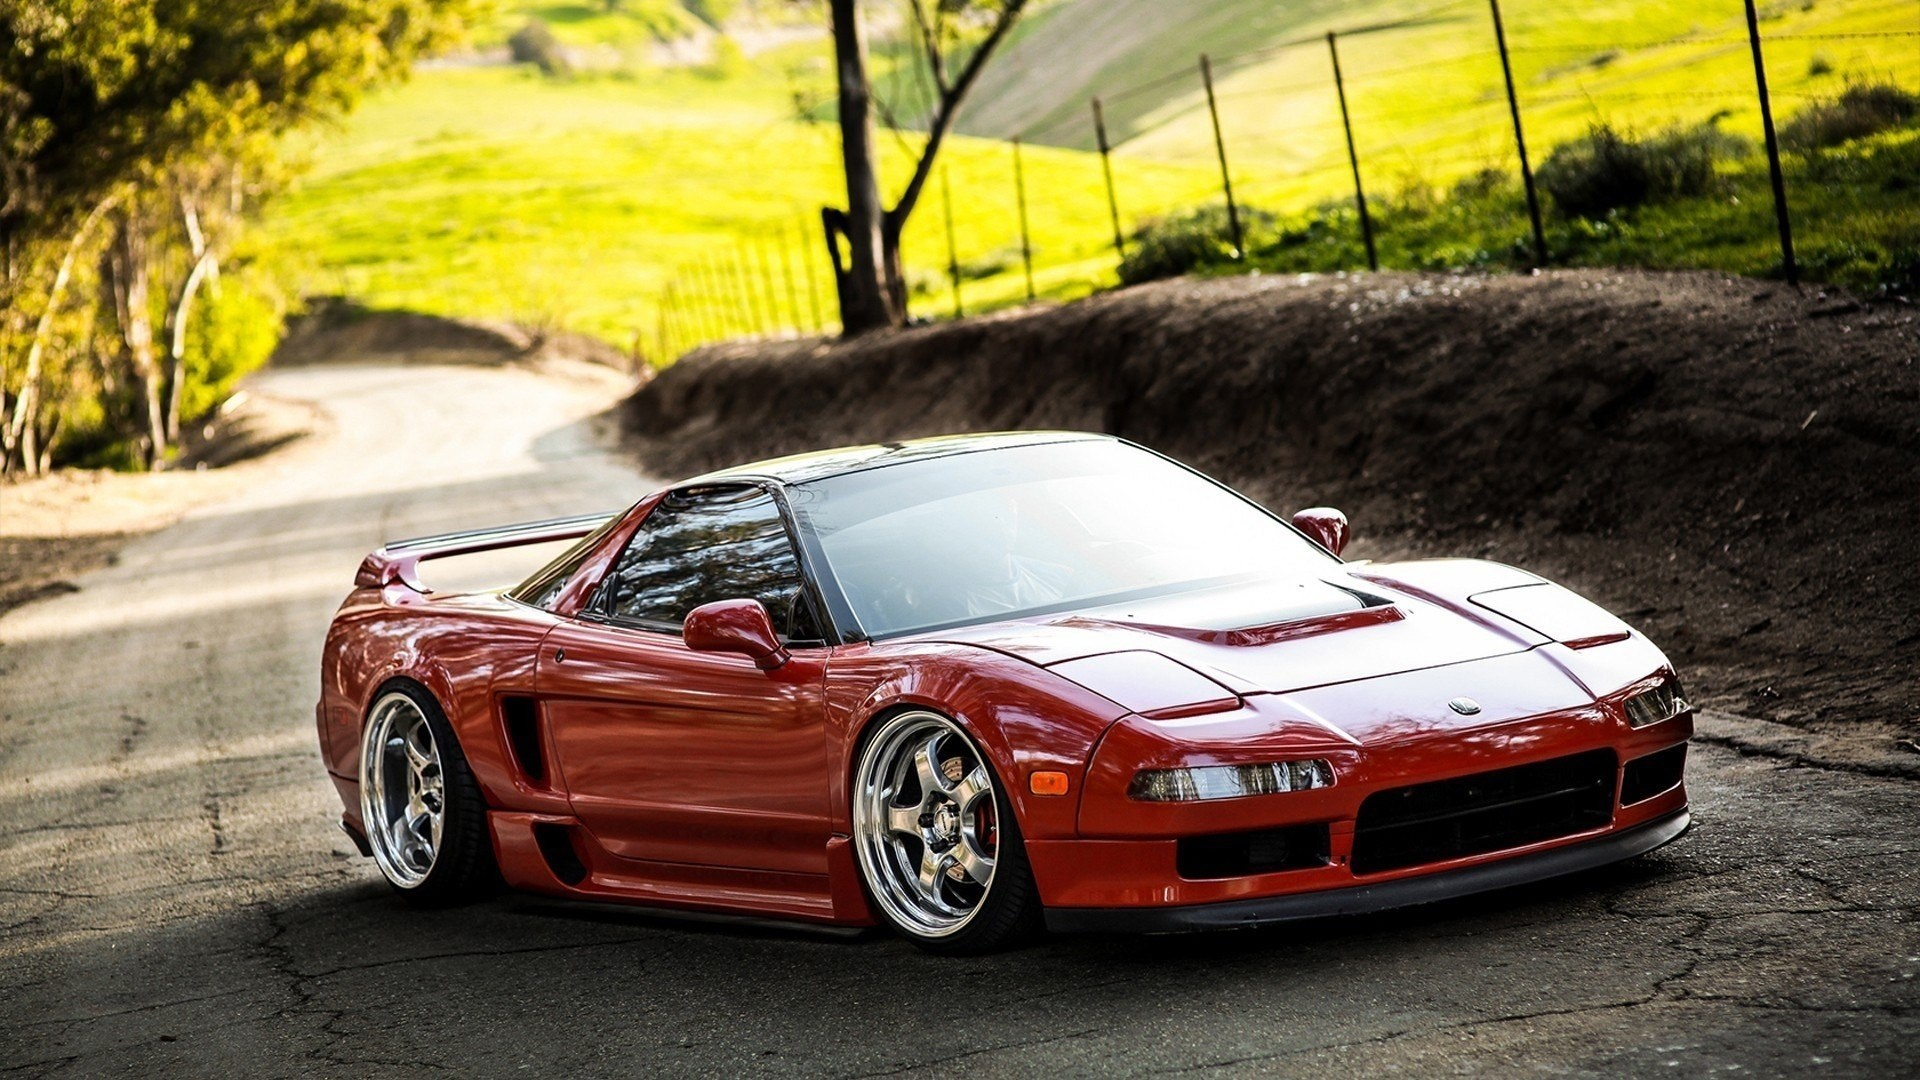 Awesome NSX Wallpaper